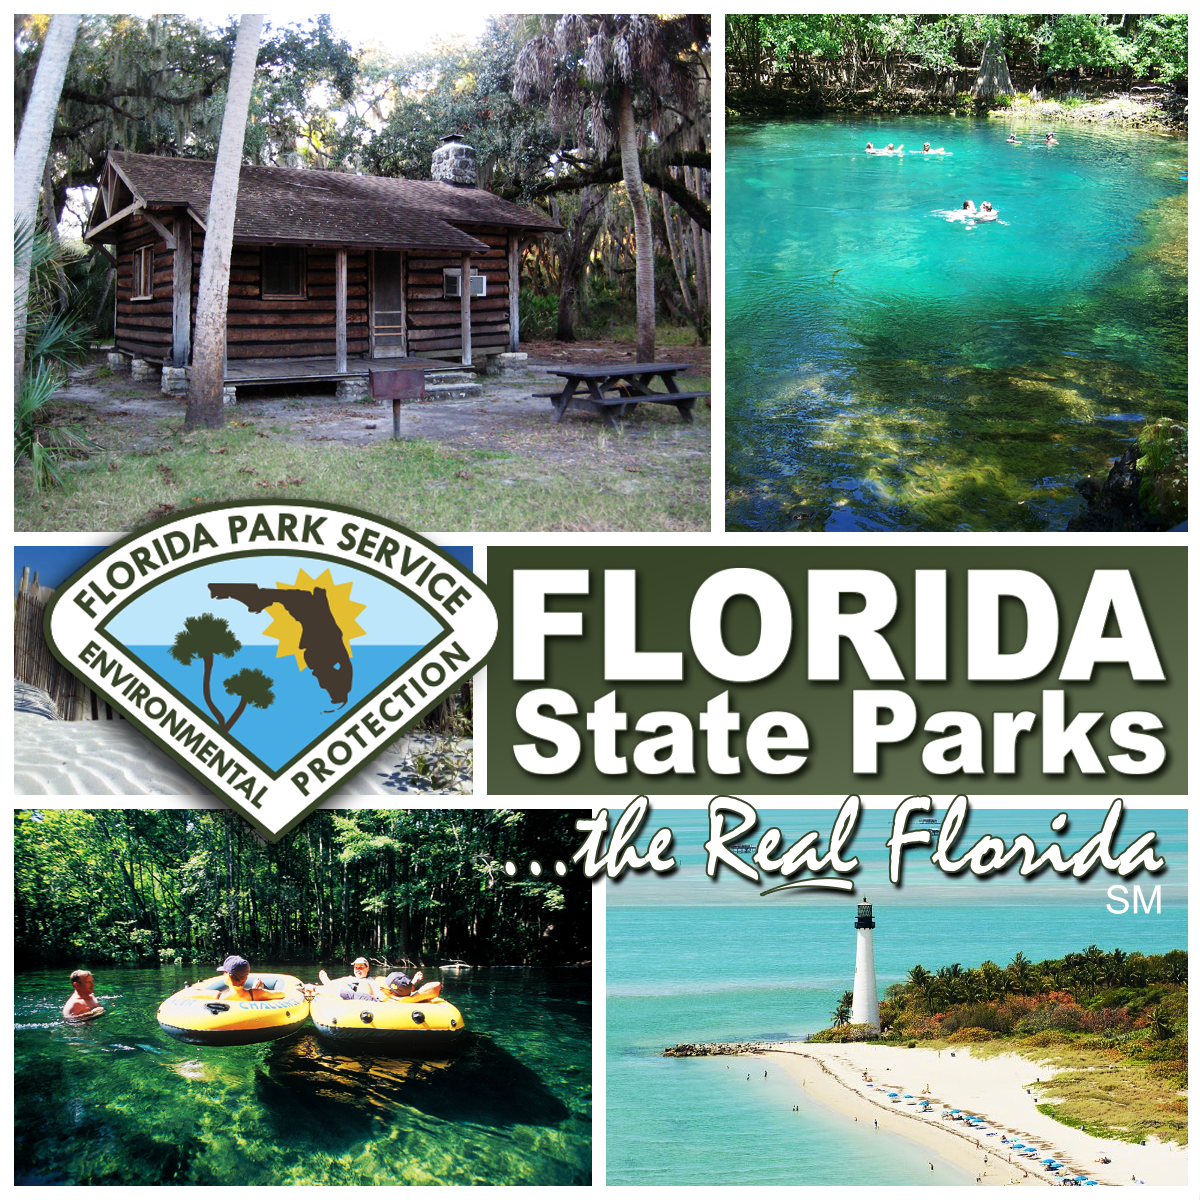 Caladesi Island Florida: Annual Pass Information